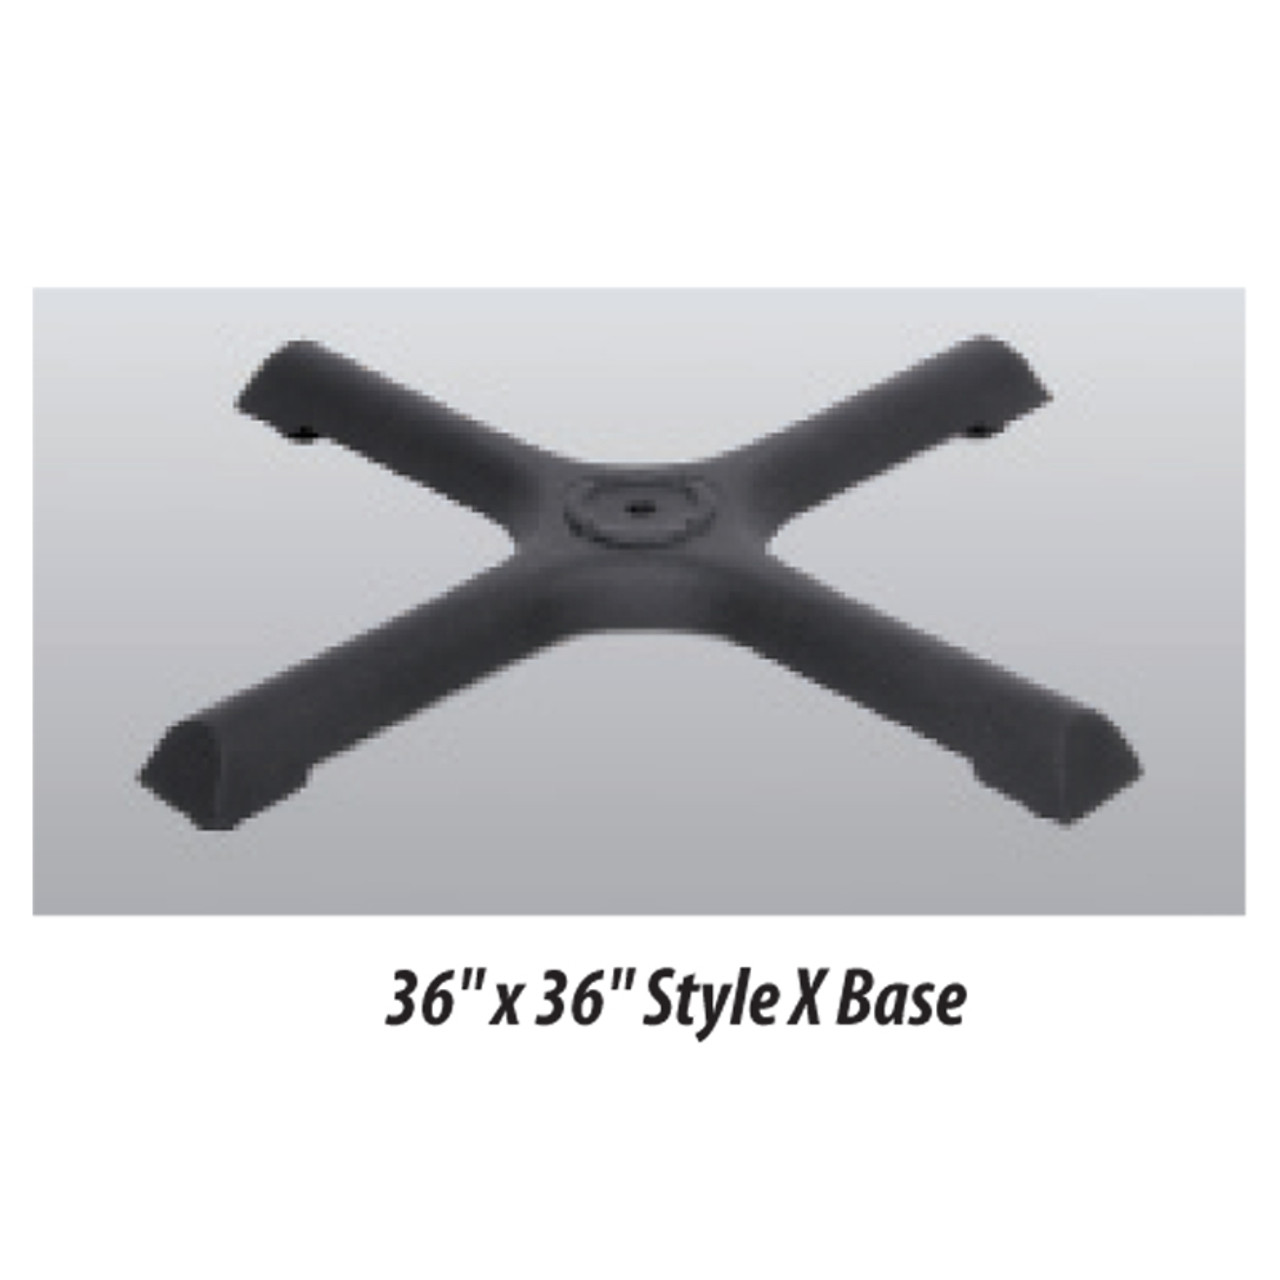 "X Style Table Base 36""x36"" - replacementtablelegs.com"